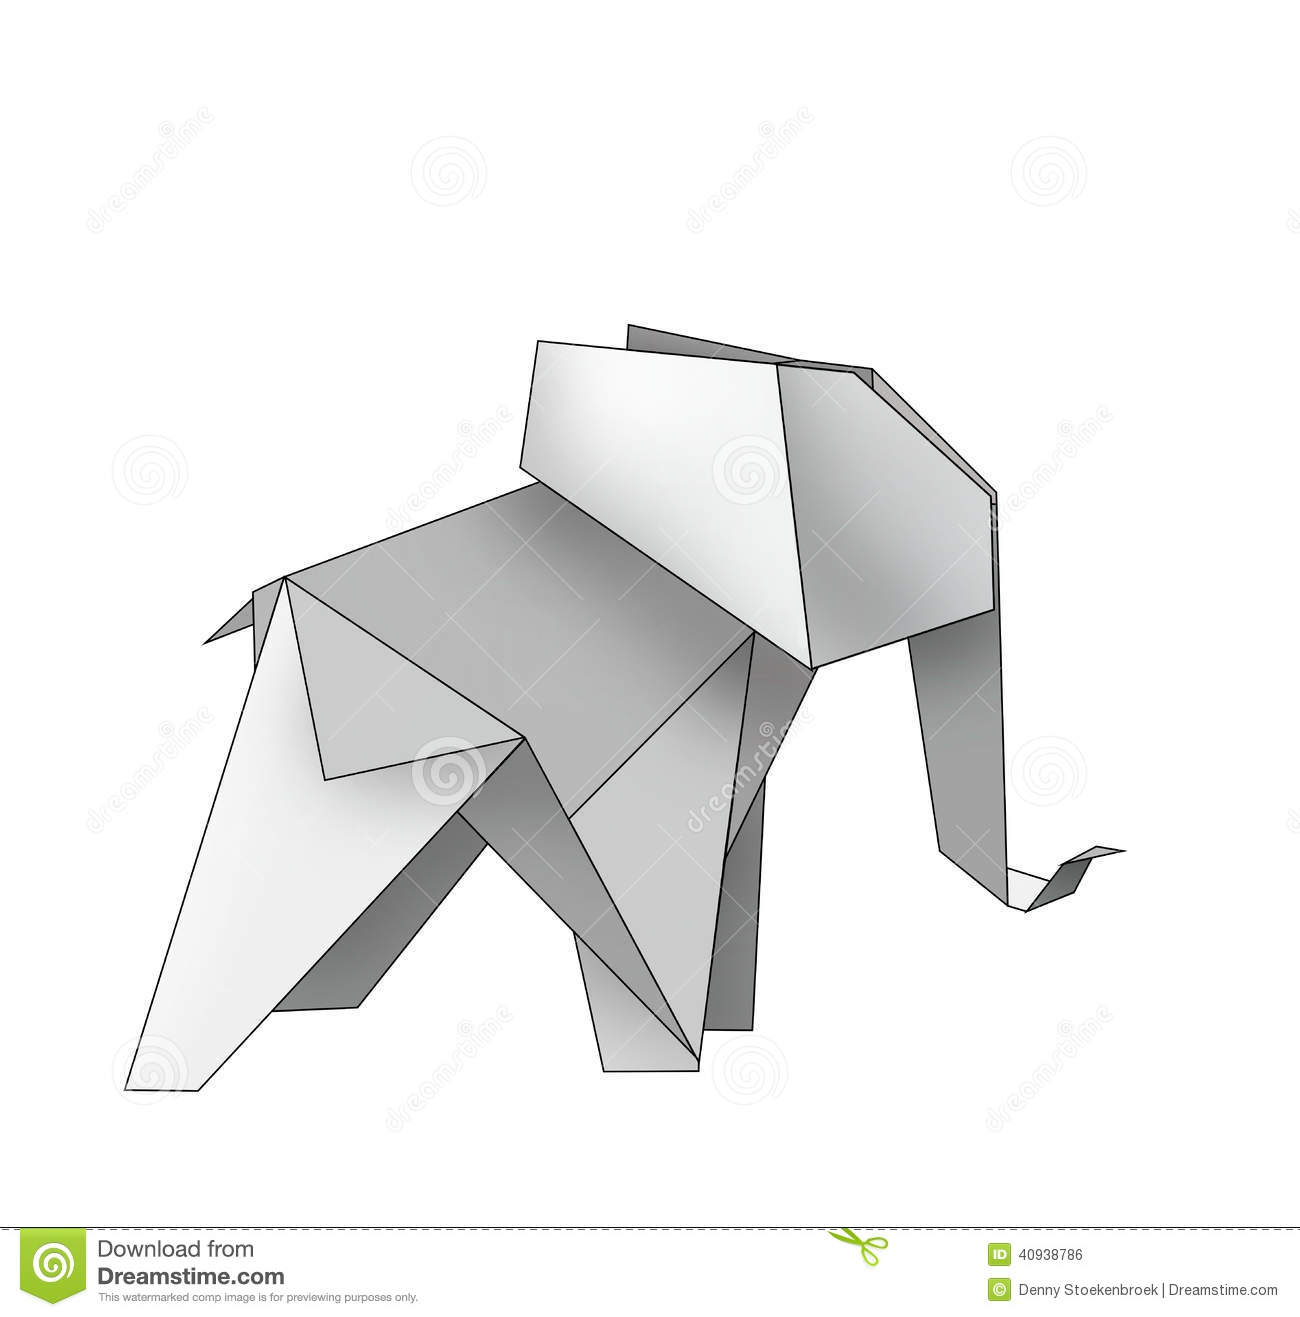 Origami Elephant Stock Illustration - Image: 40938786